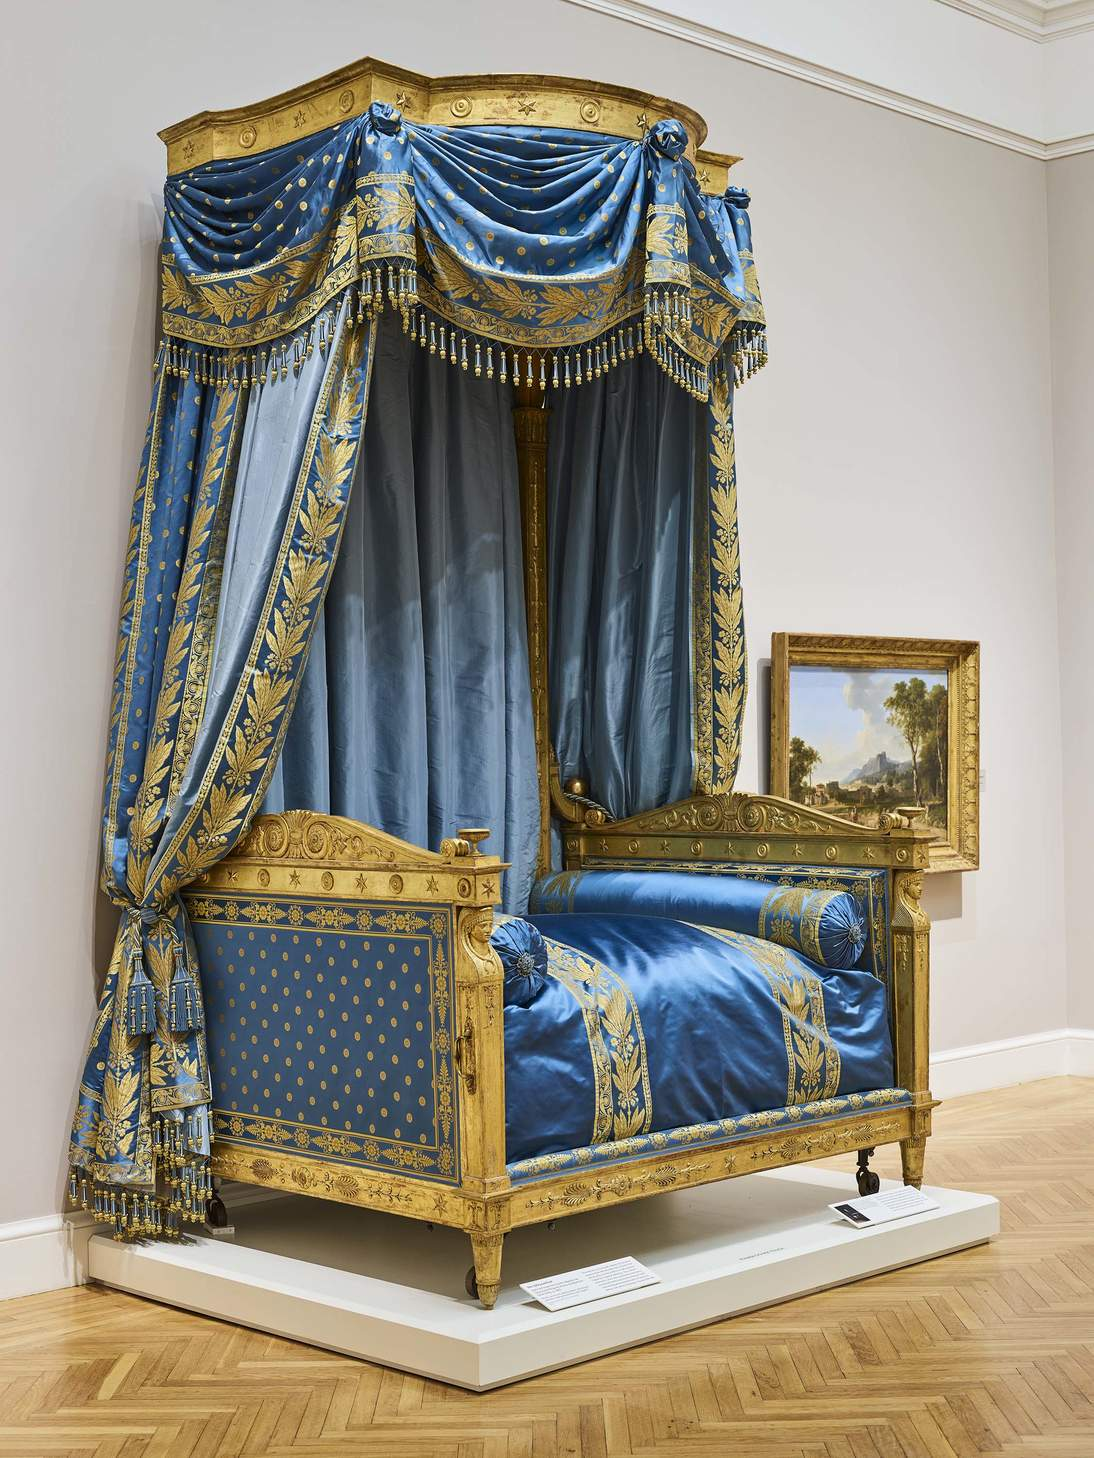 The Talleyrand Bed at the Legion of Honor